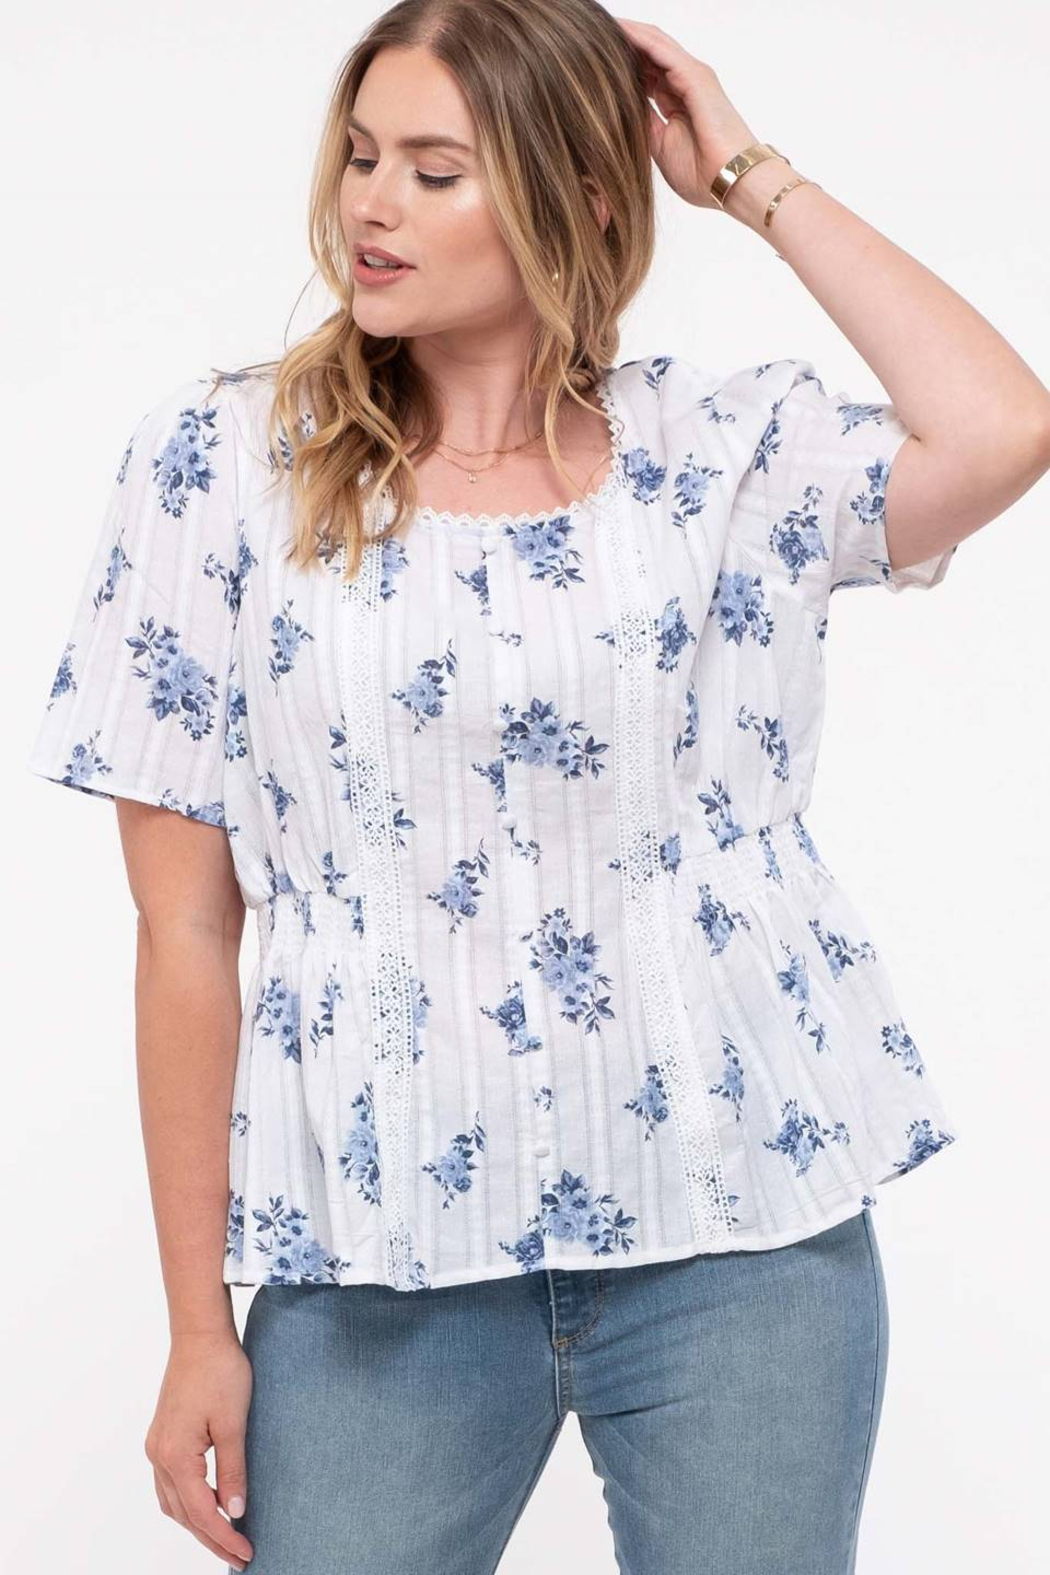 perch Plus Scoop Neck Peplum Top - Front Cropped Image